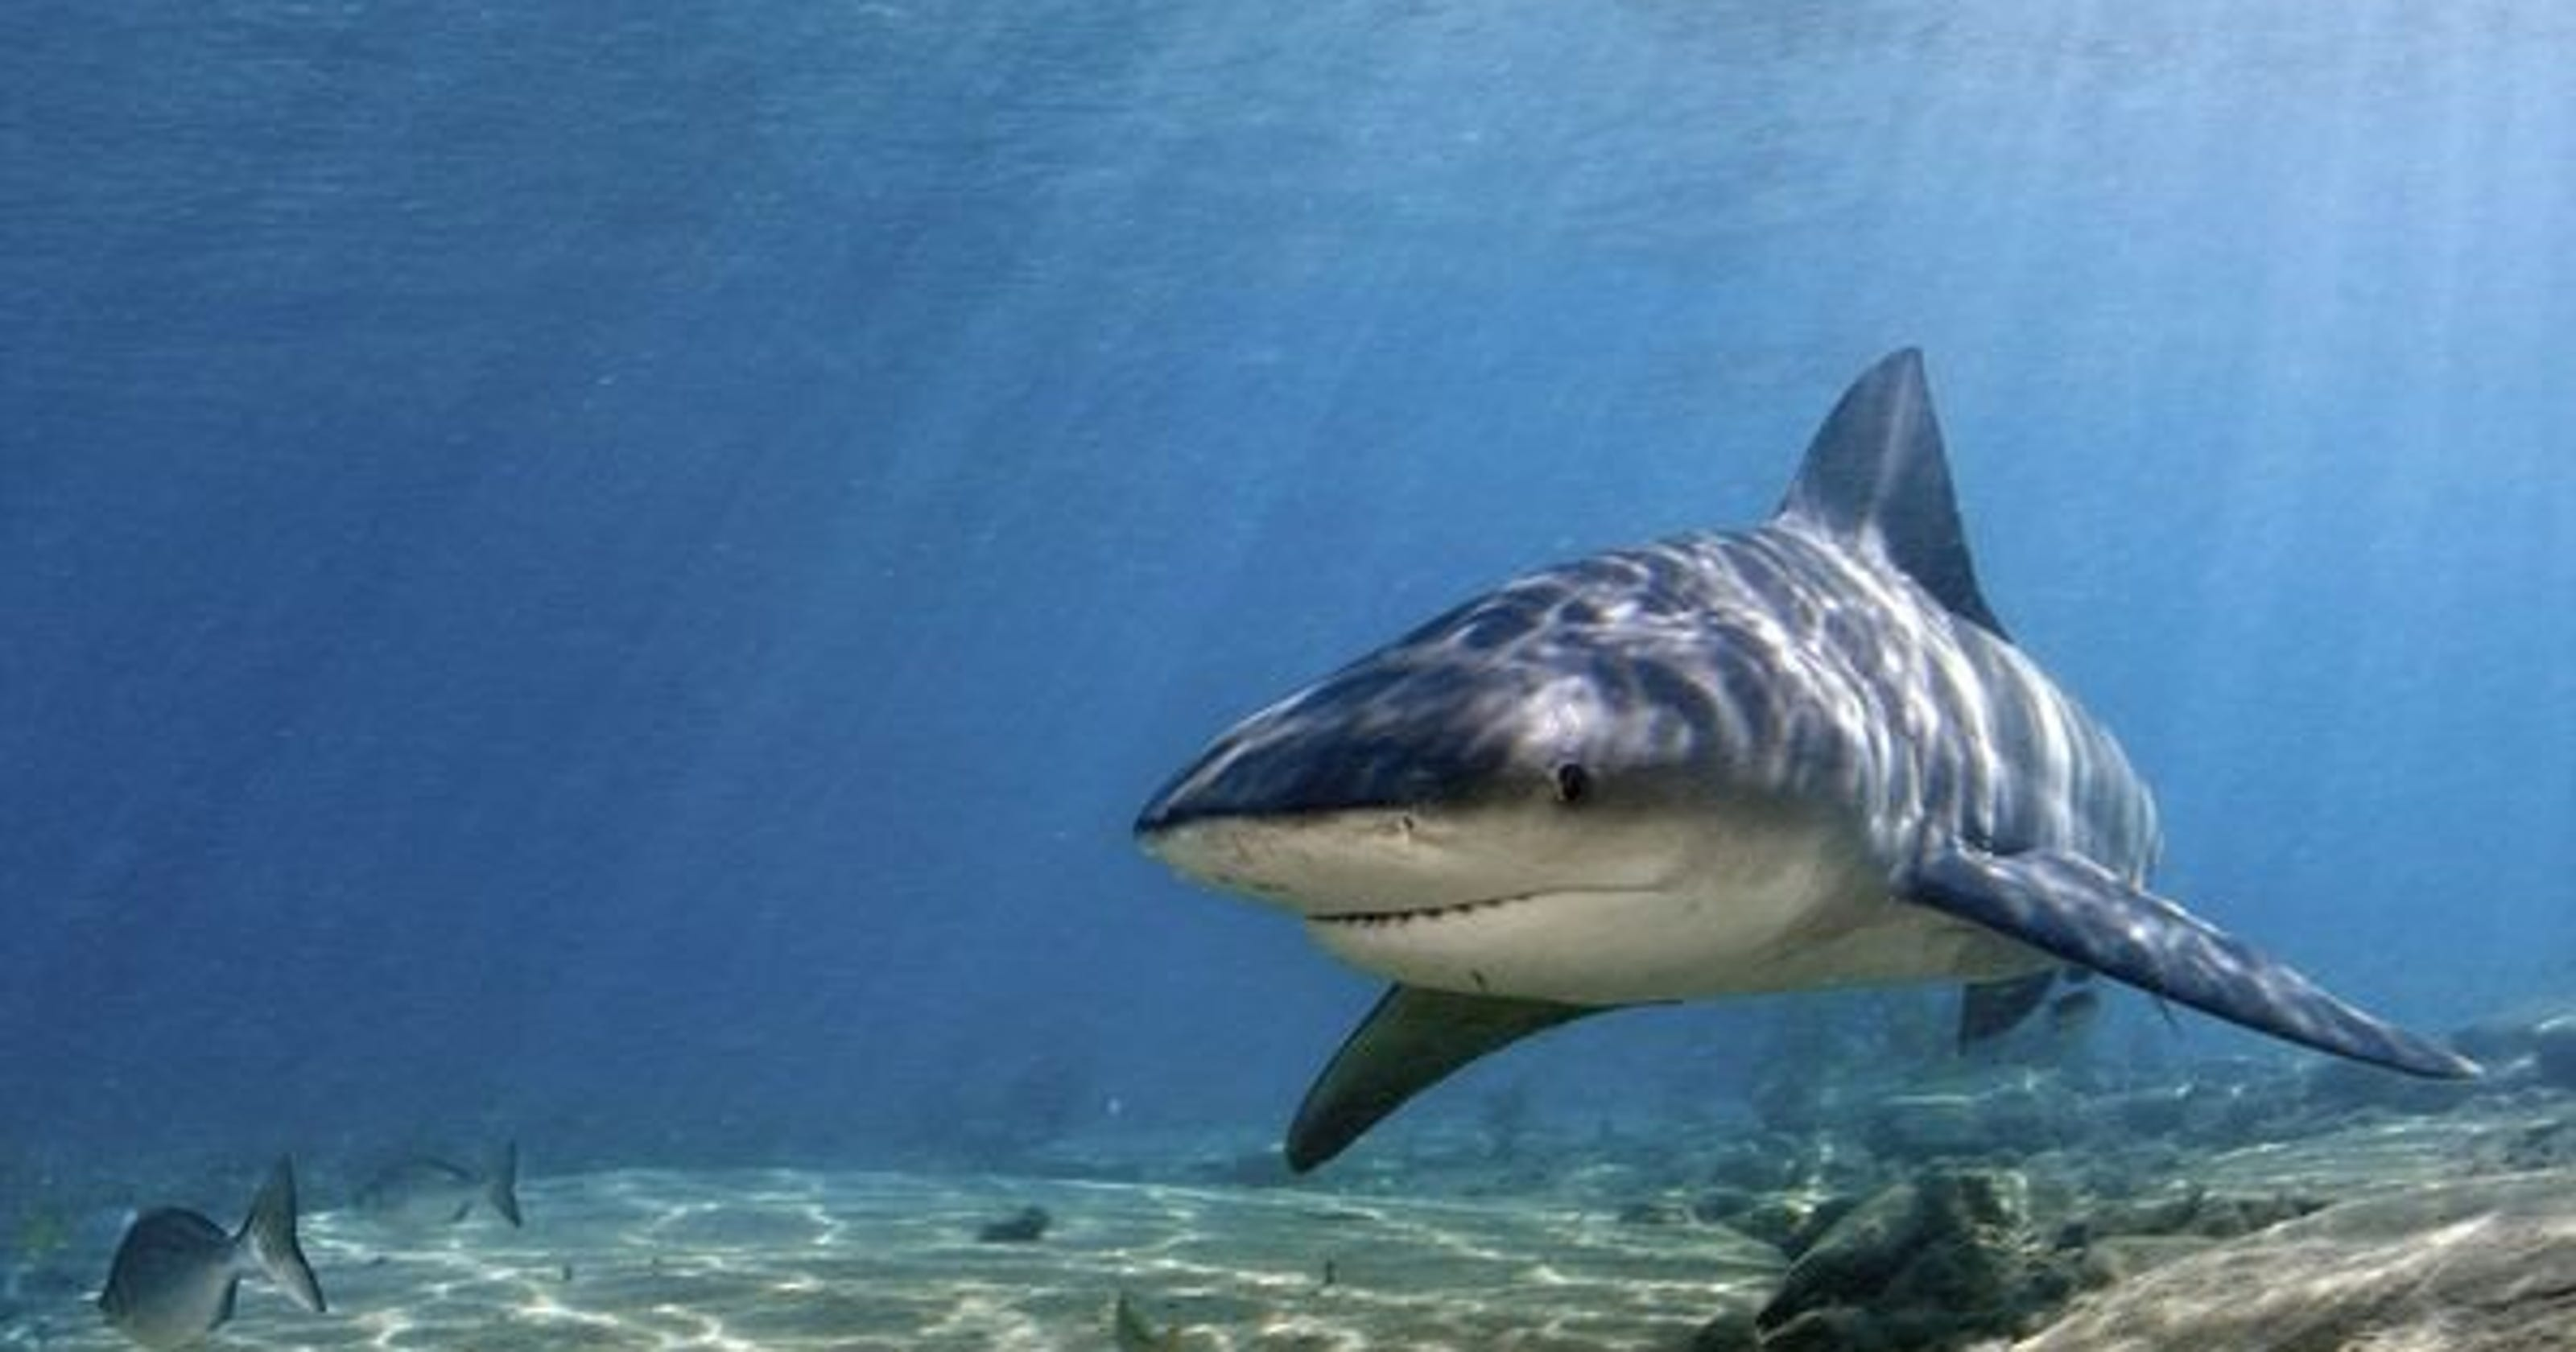 Bull sharks expanding north but still call Indian River